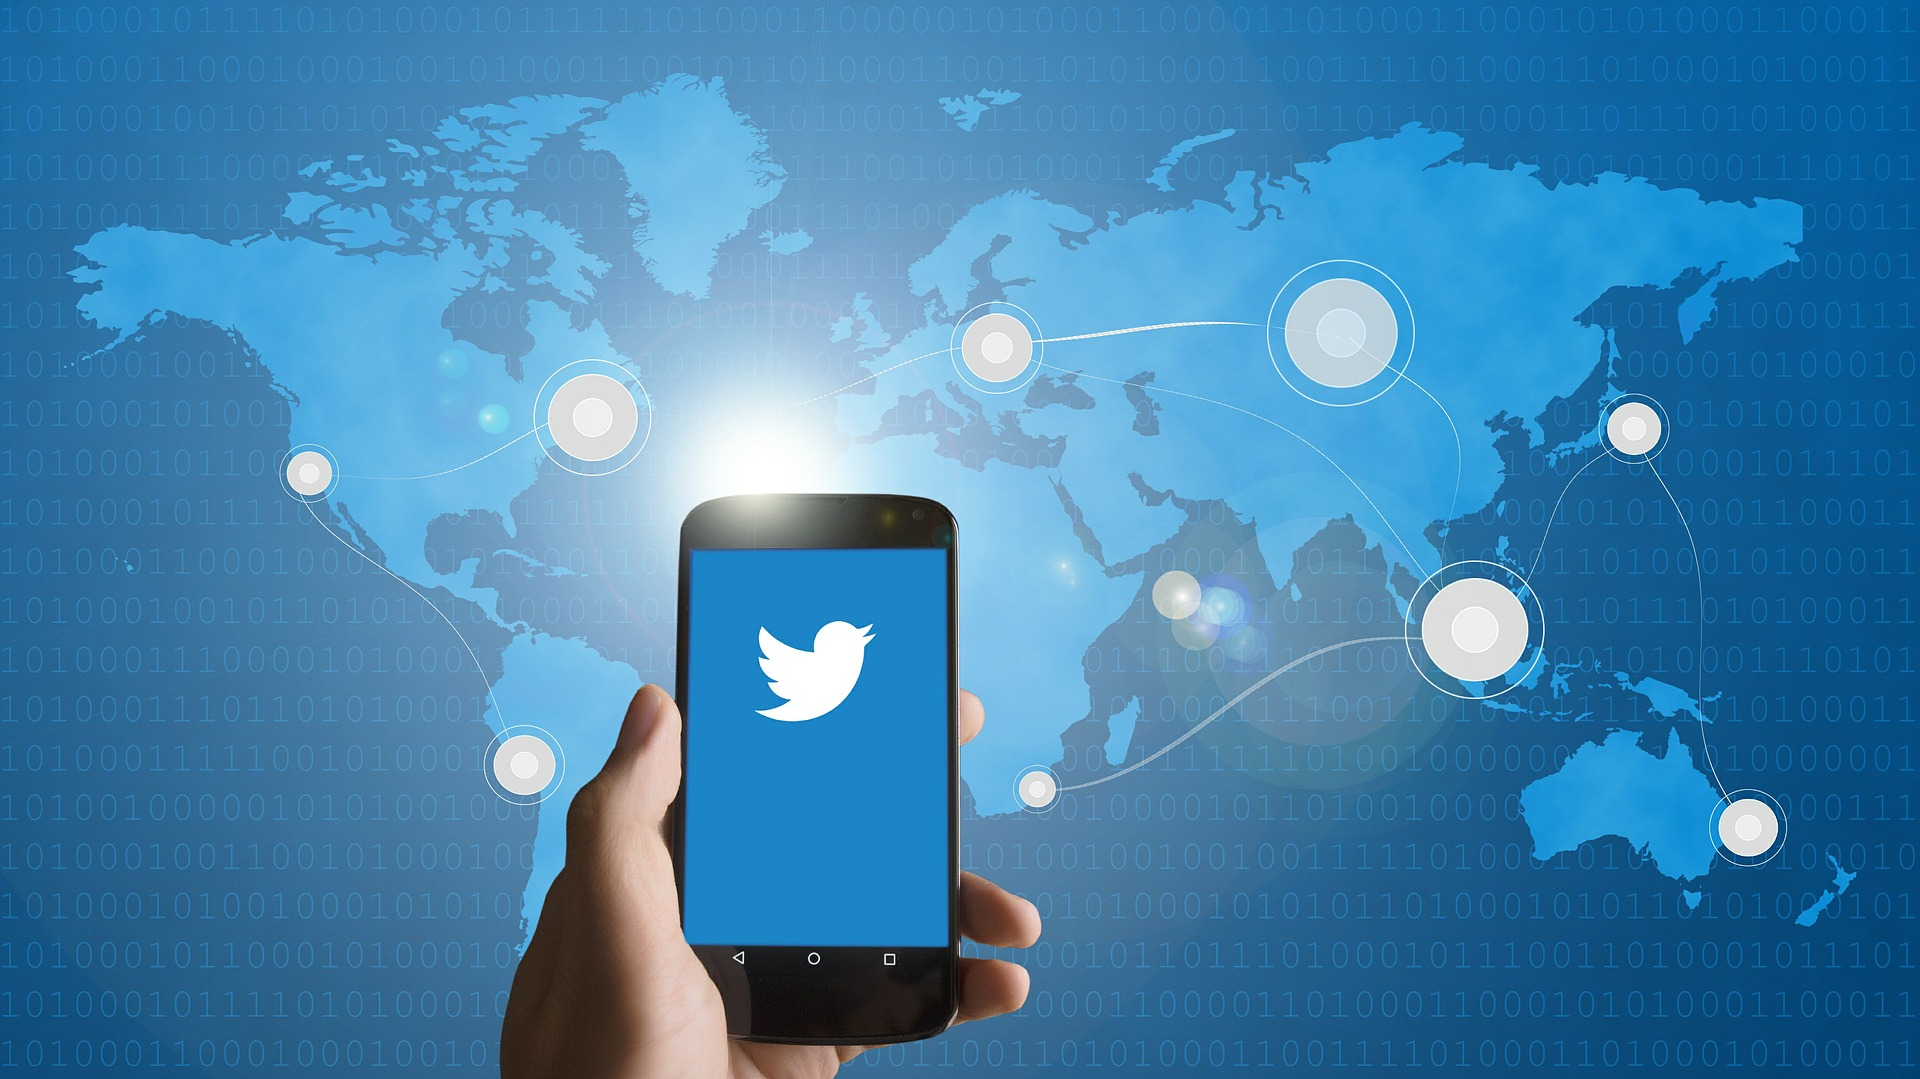 Twitter is changing the way we use language